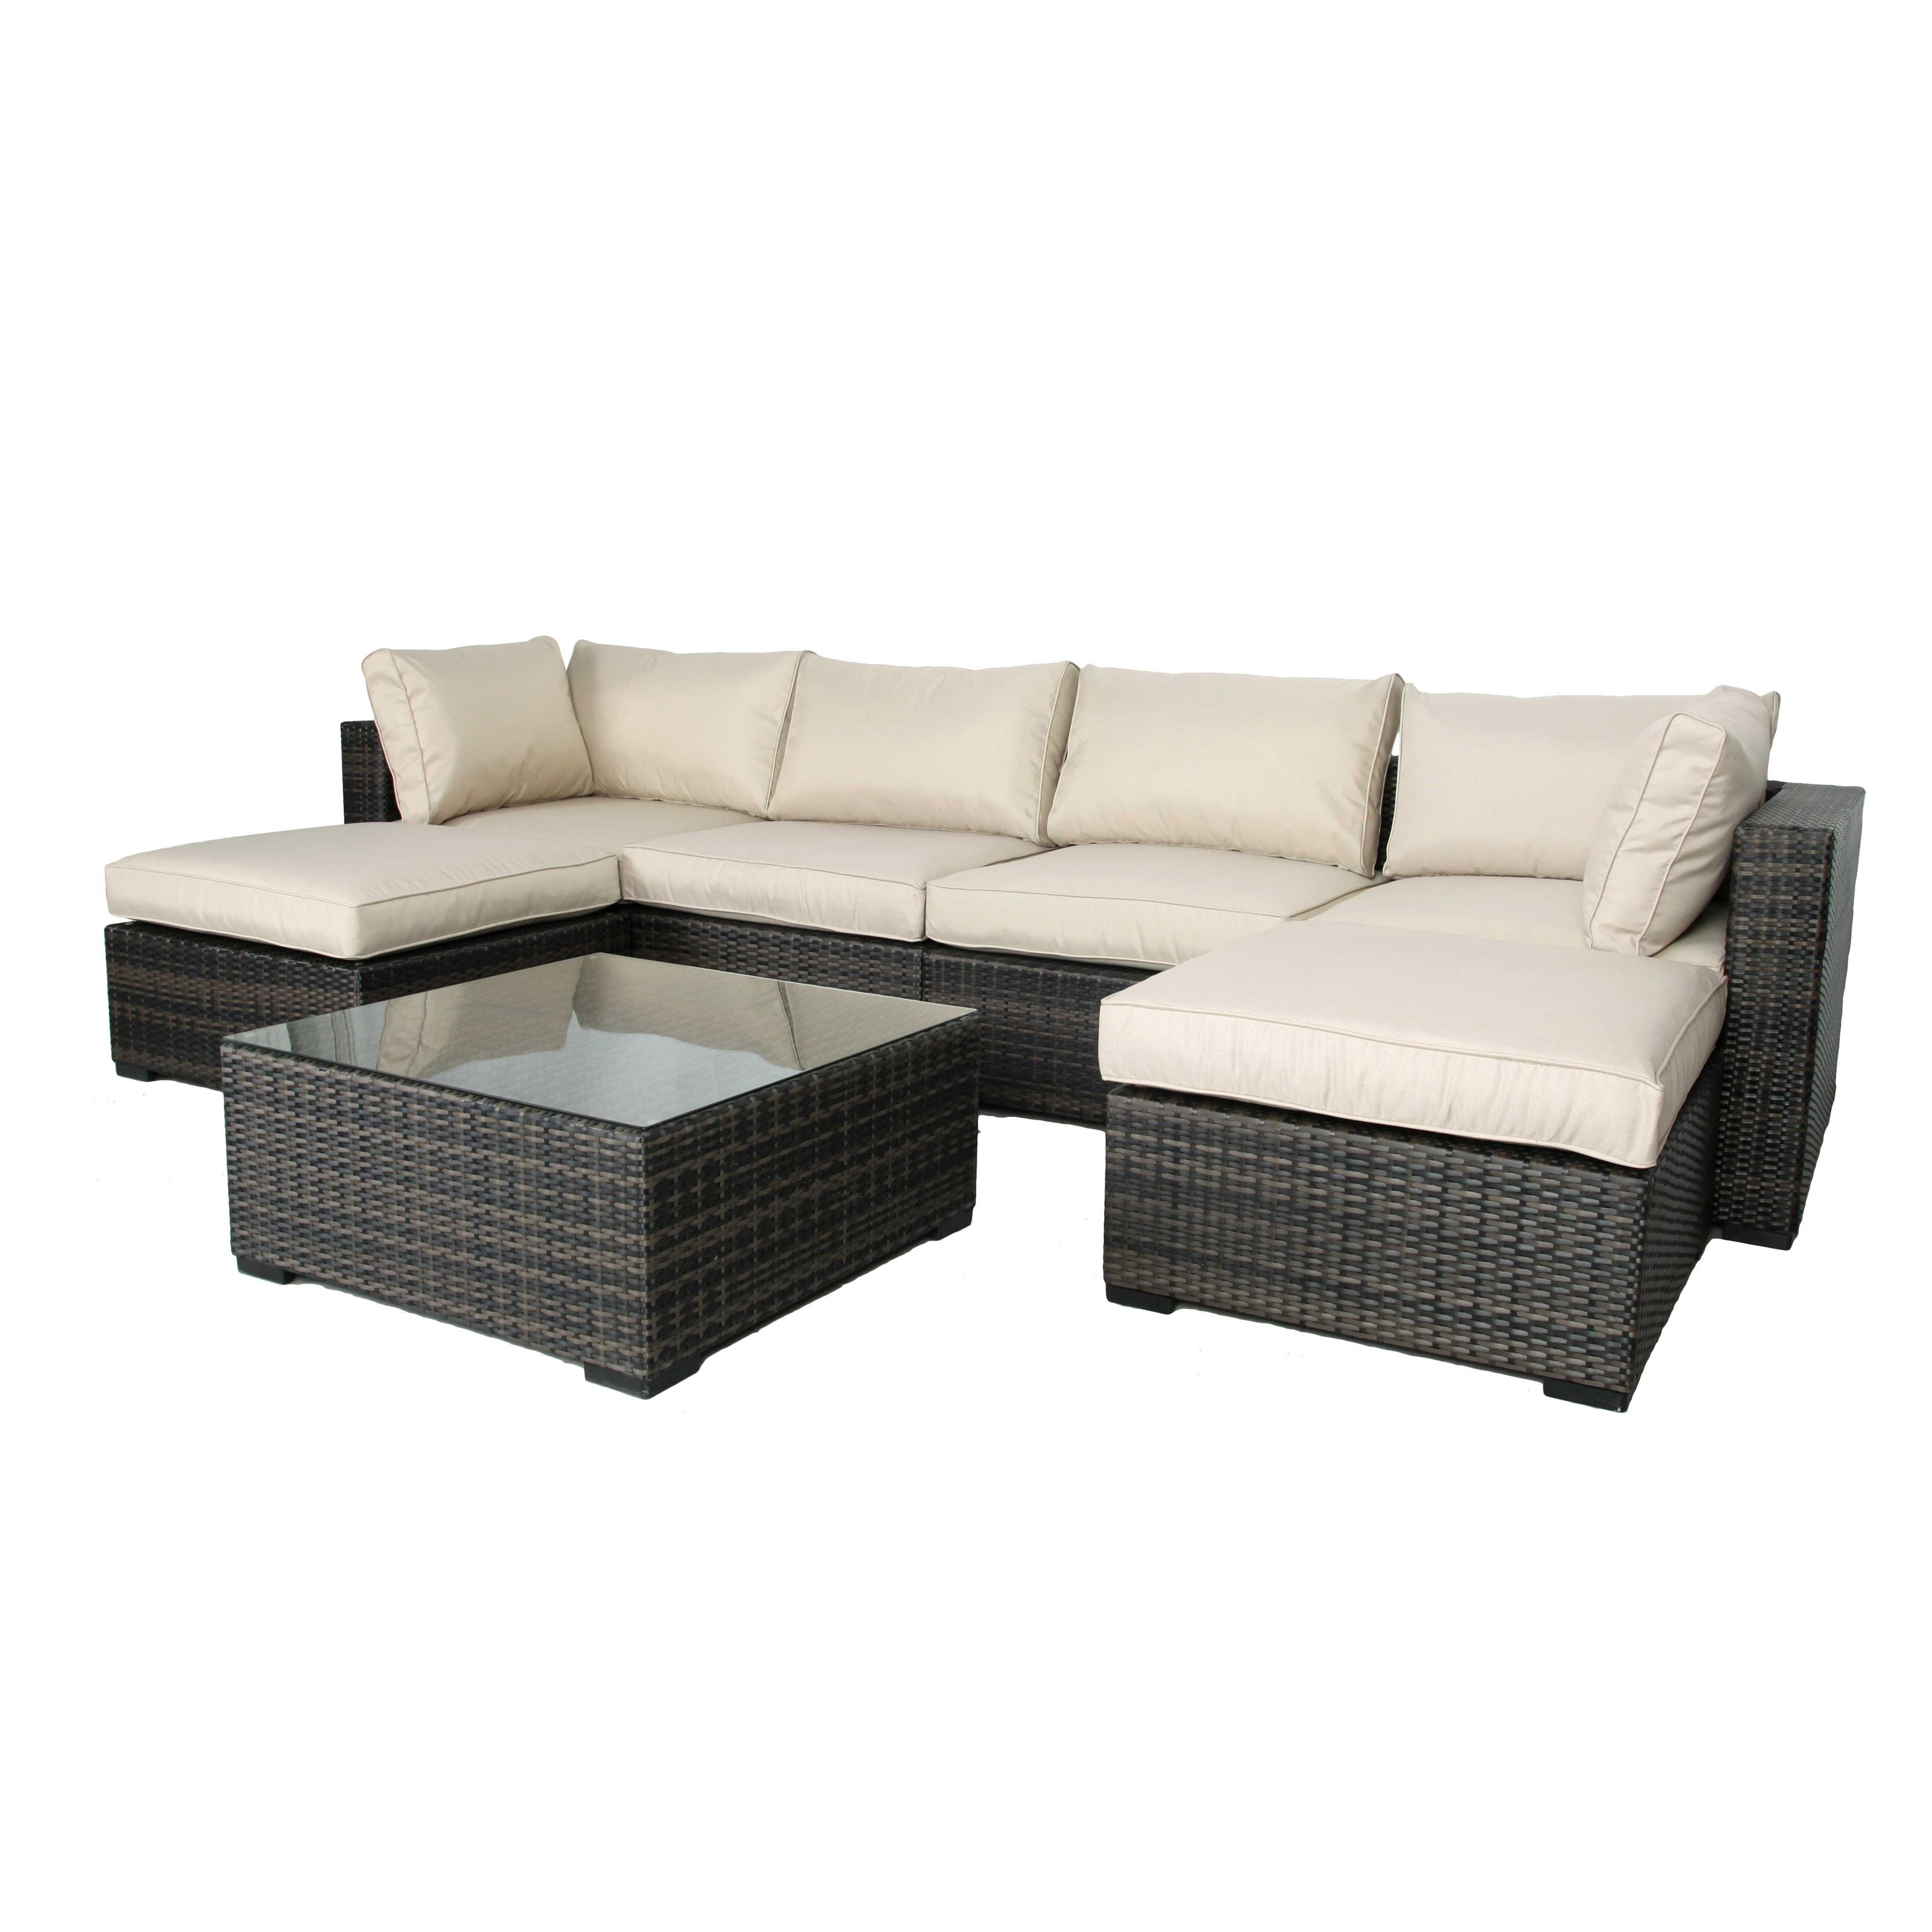 Creative Living South H&ton 7 Piece Wicker Sectional Conversation Set - Walmart.com  sc 1 st  Walmart : conversation sectional - Sectionals, Sofas & Couches